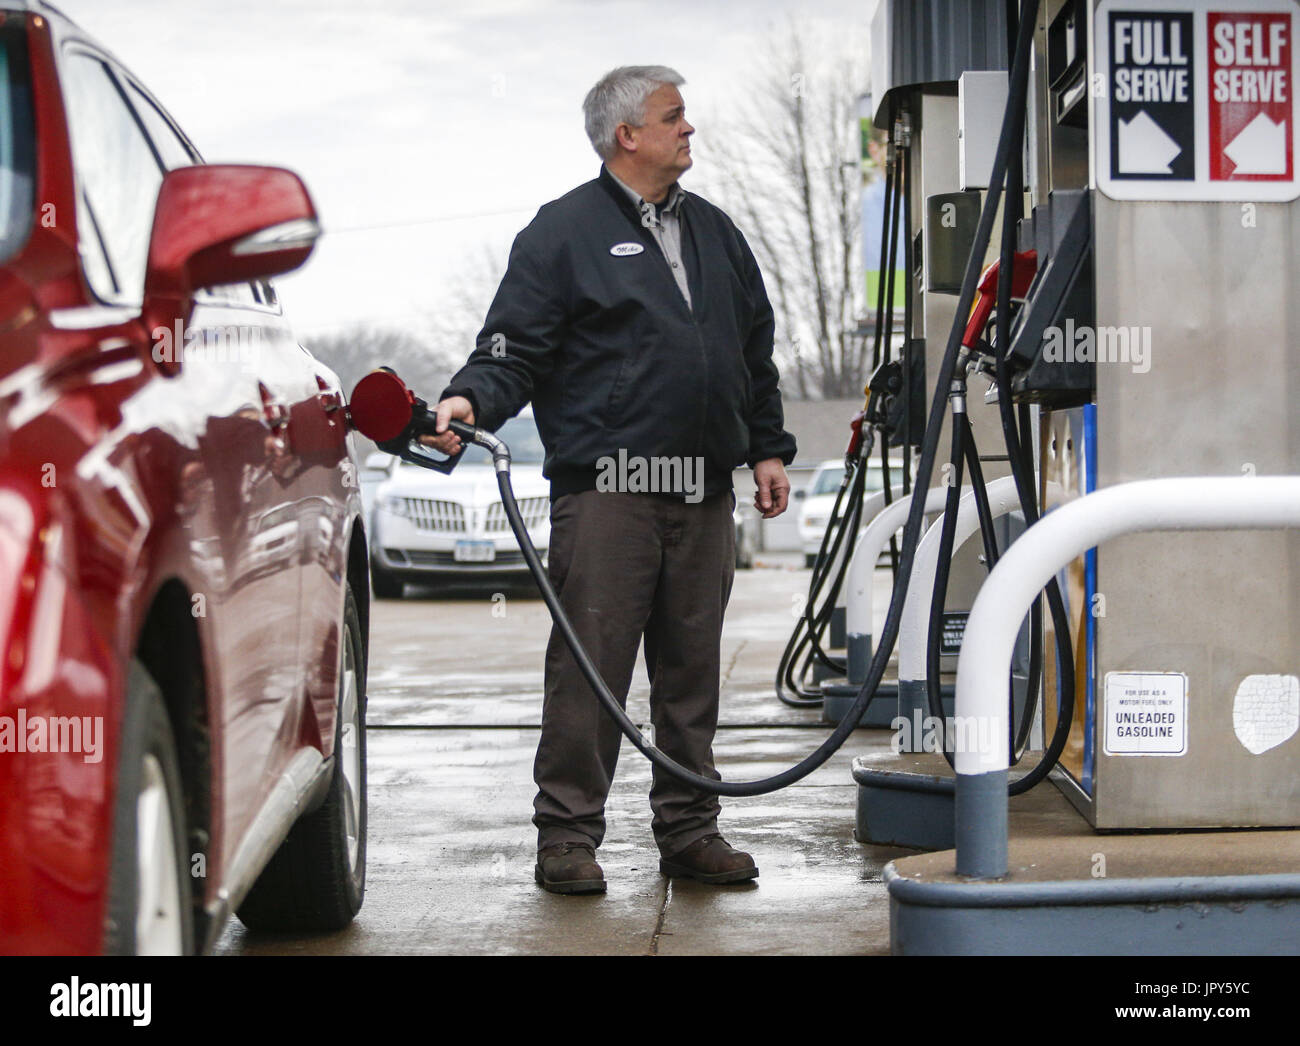 Davenport, Iowa, USA. 19th Jan, 2017. Mechanic Mike Waite fills up a customer's car with gas at Dittmer's Service in Davenport on Thursday, January 19, 2017. In January of 2016, the family owned full-service gas station parted ways with Shell Oil Company. The four-pump station lost its big oil affiliation this when the Dittmer brothers refused to conform to the multinational oil and gasoline company's expectations. Credit: Andy Abeyta/Quad-City Times/ZUMA Wire/Alamy Live News - Stock Image